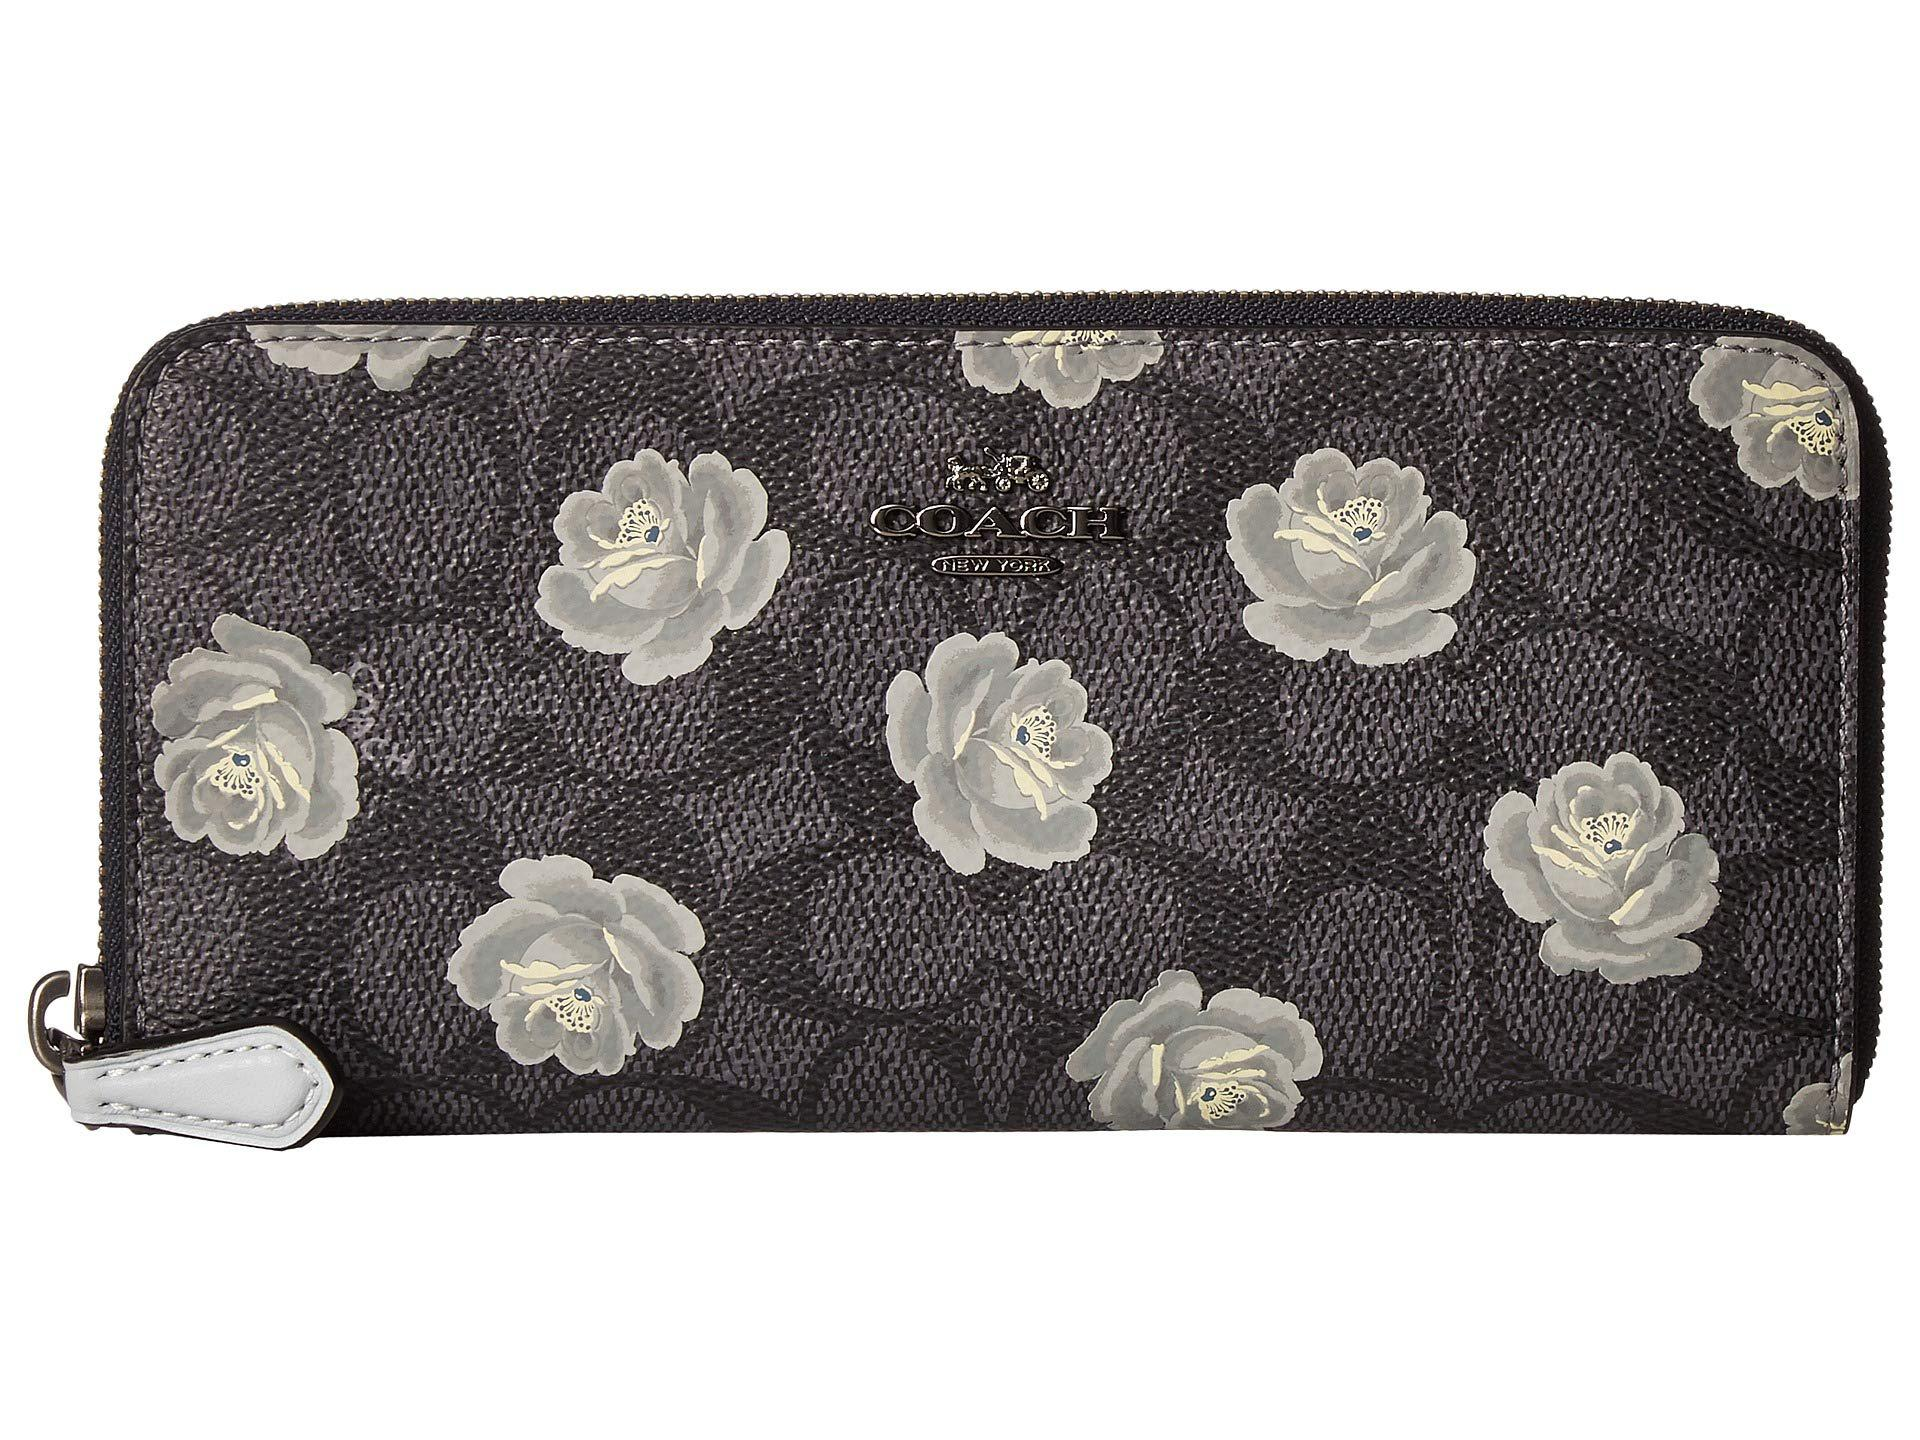 Lyst - COACH Accordion Zip Wallet In Signature Rose Print (b4 tan ... 31e3d4c417